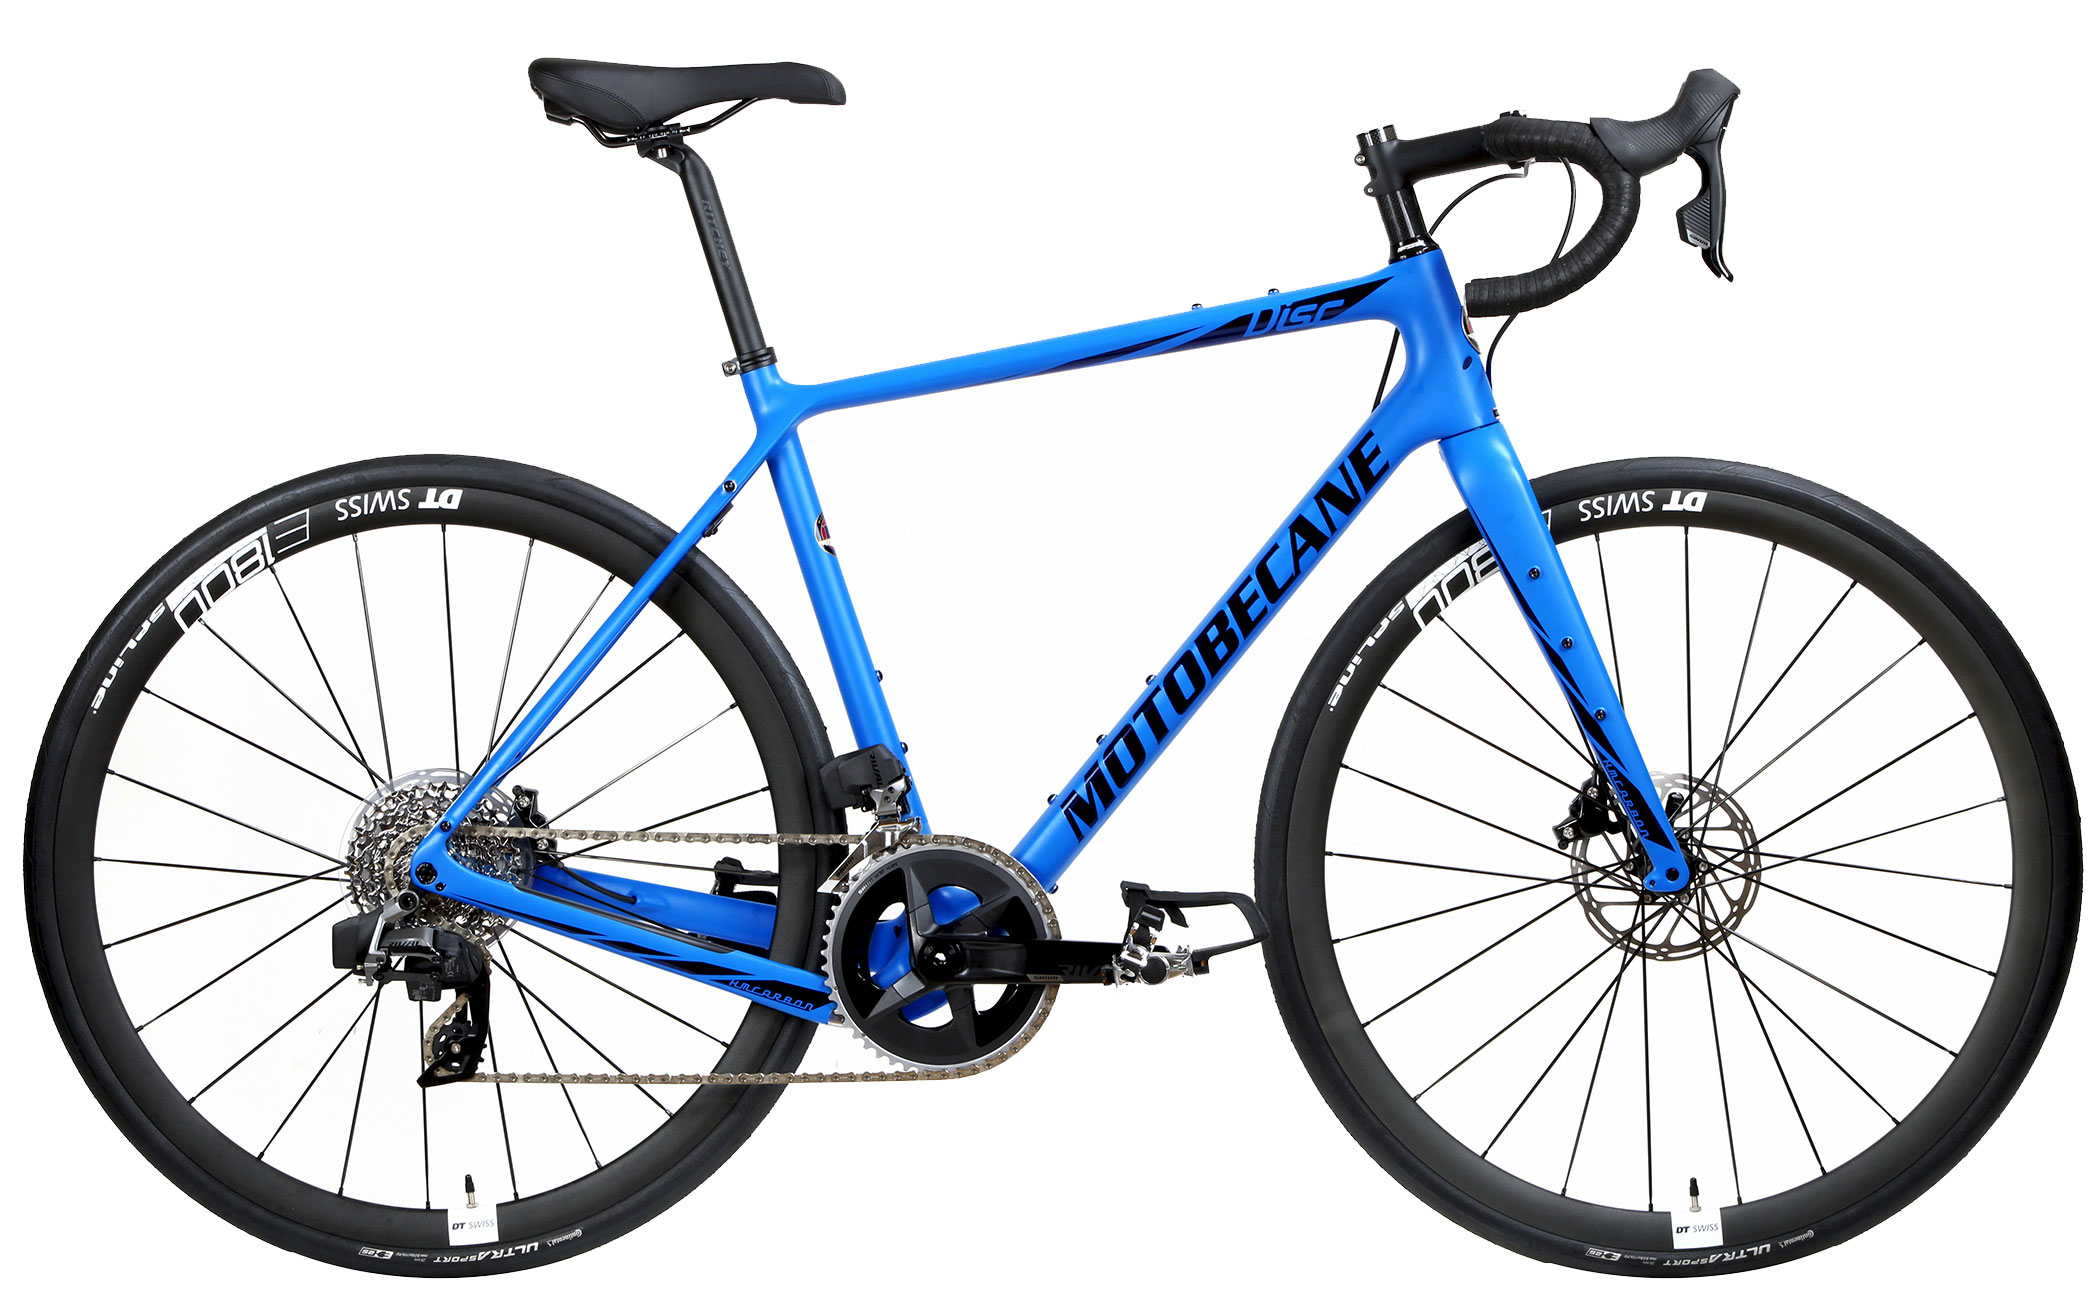 Bikes Motobecane Century Team Carbon Fiber Shimano Dura Ace Triple /FSA, 30 speed Road Bike Image